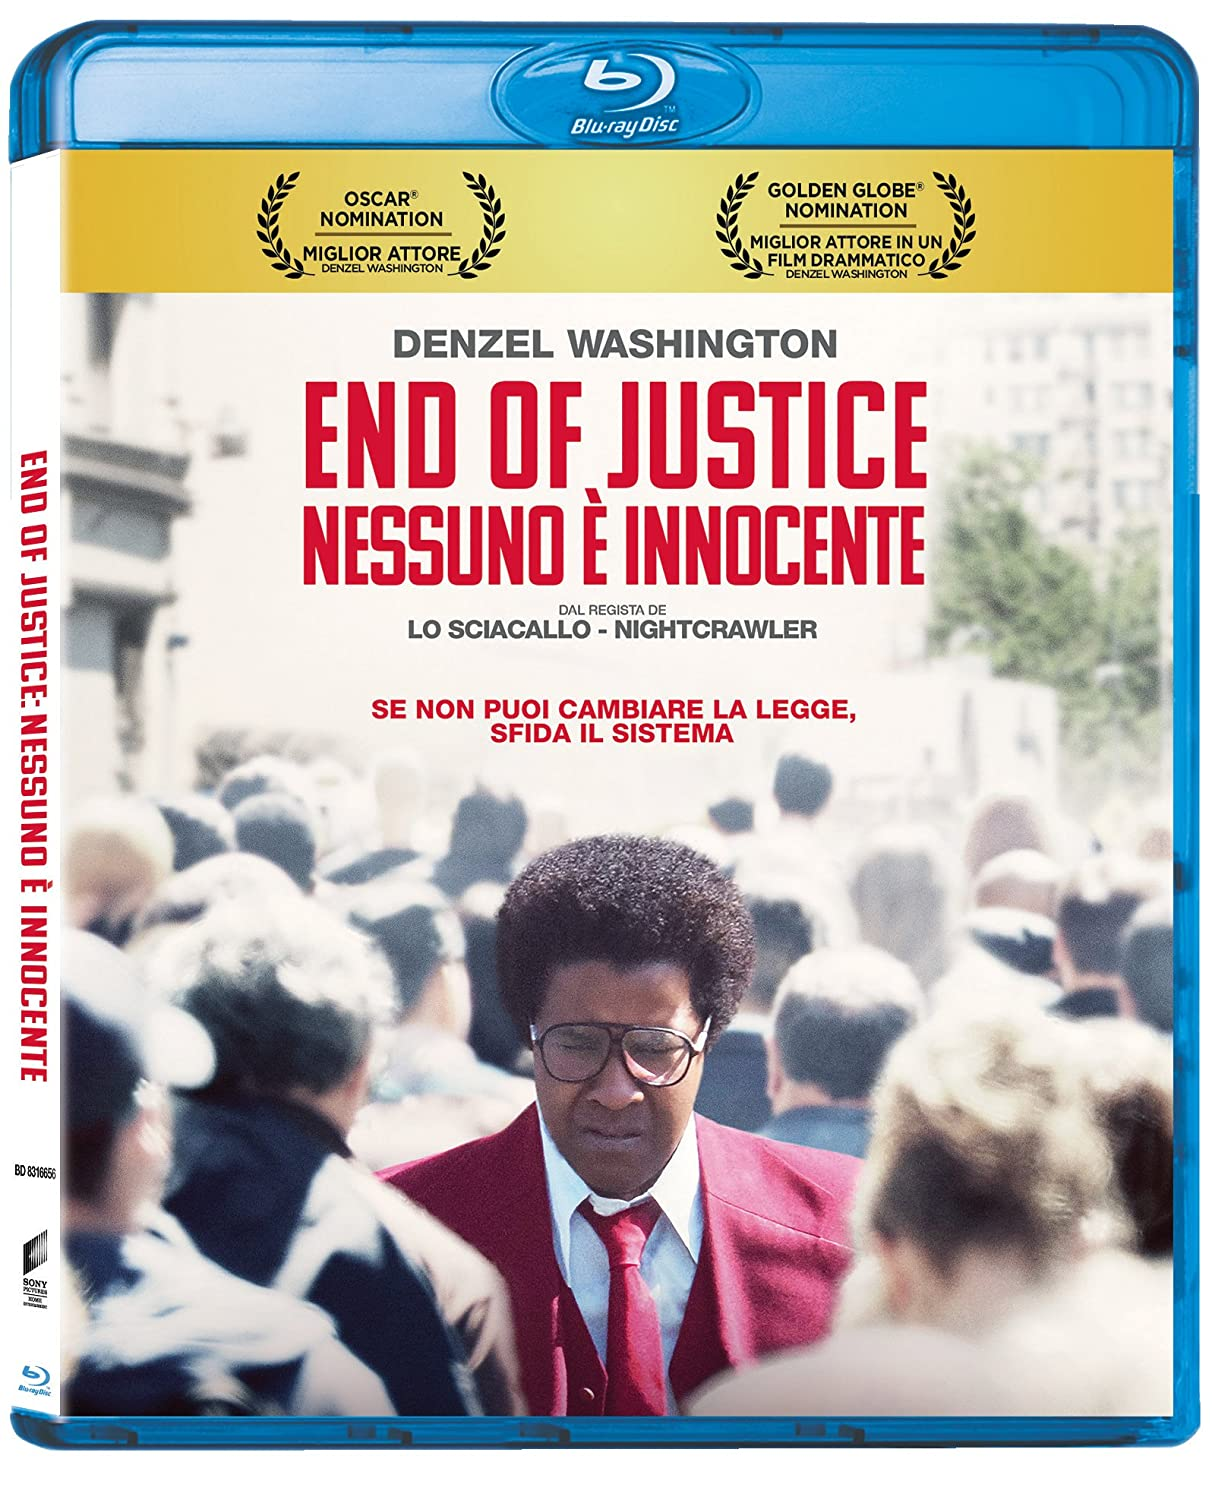 END OF JUSTICE: NESSUNO E' INNOCENTE - BLU RAY